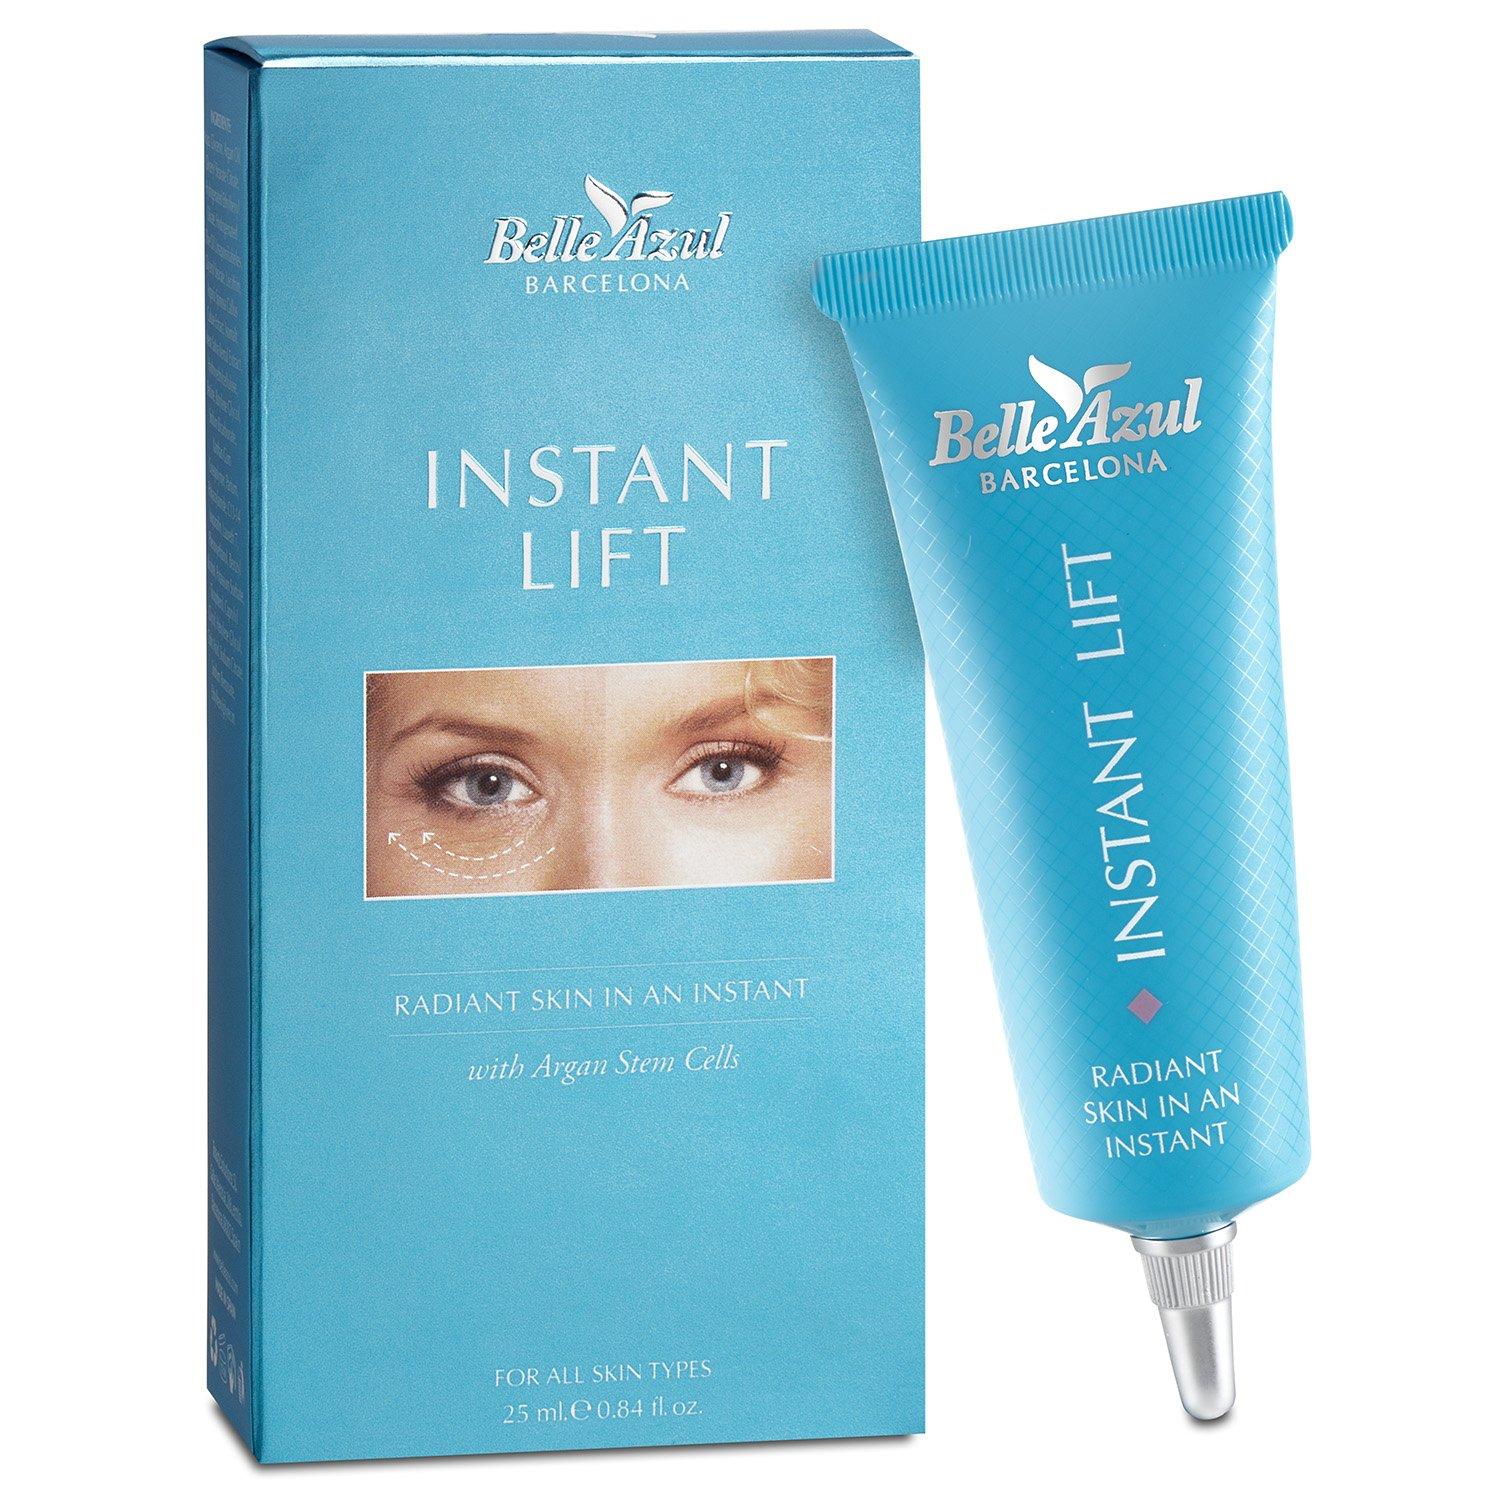 Belle Azul Instant Lift - Anti Wrinkle + Firming Eye Cream Rich in Vitamin E, Fatty Acids and Antioxidants 25 ml. / 0.84 fl.oz